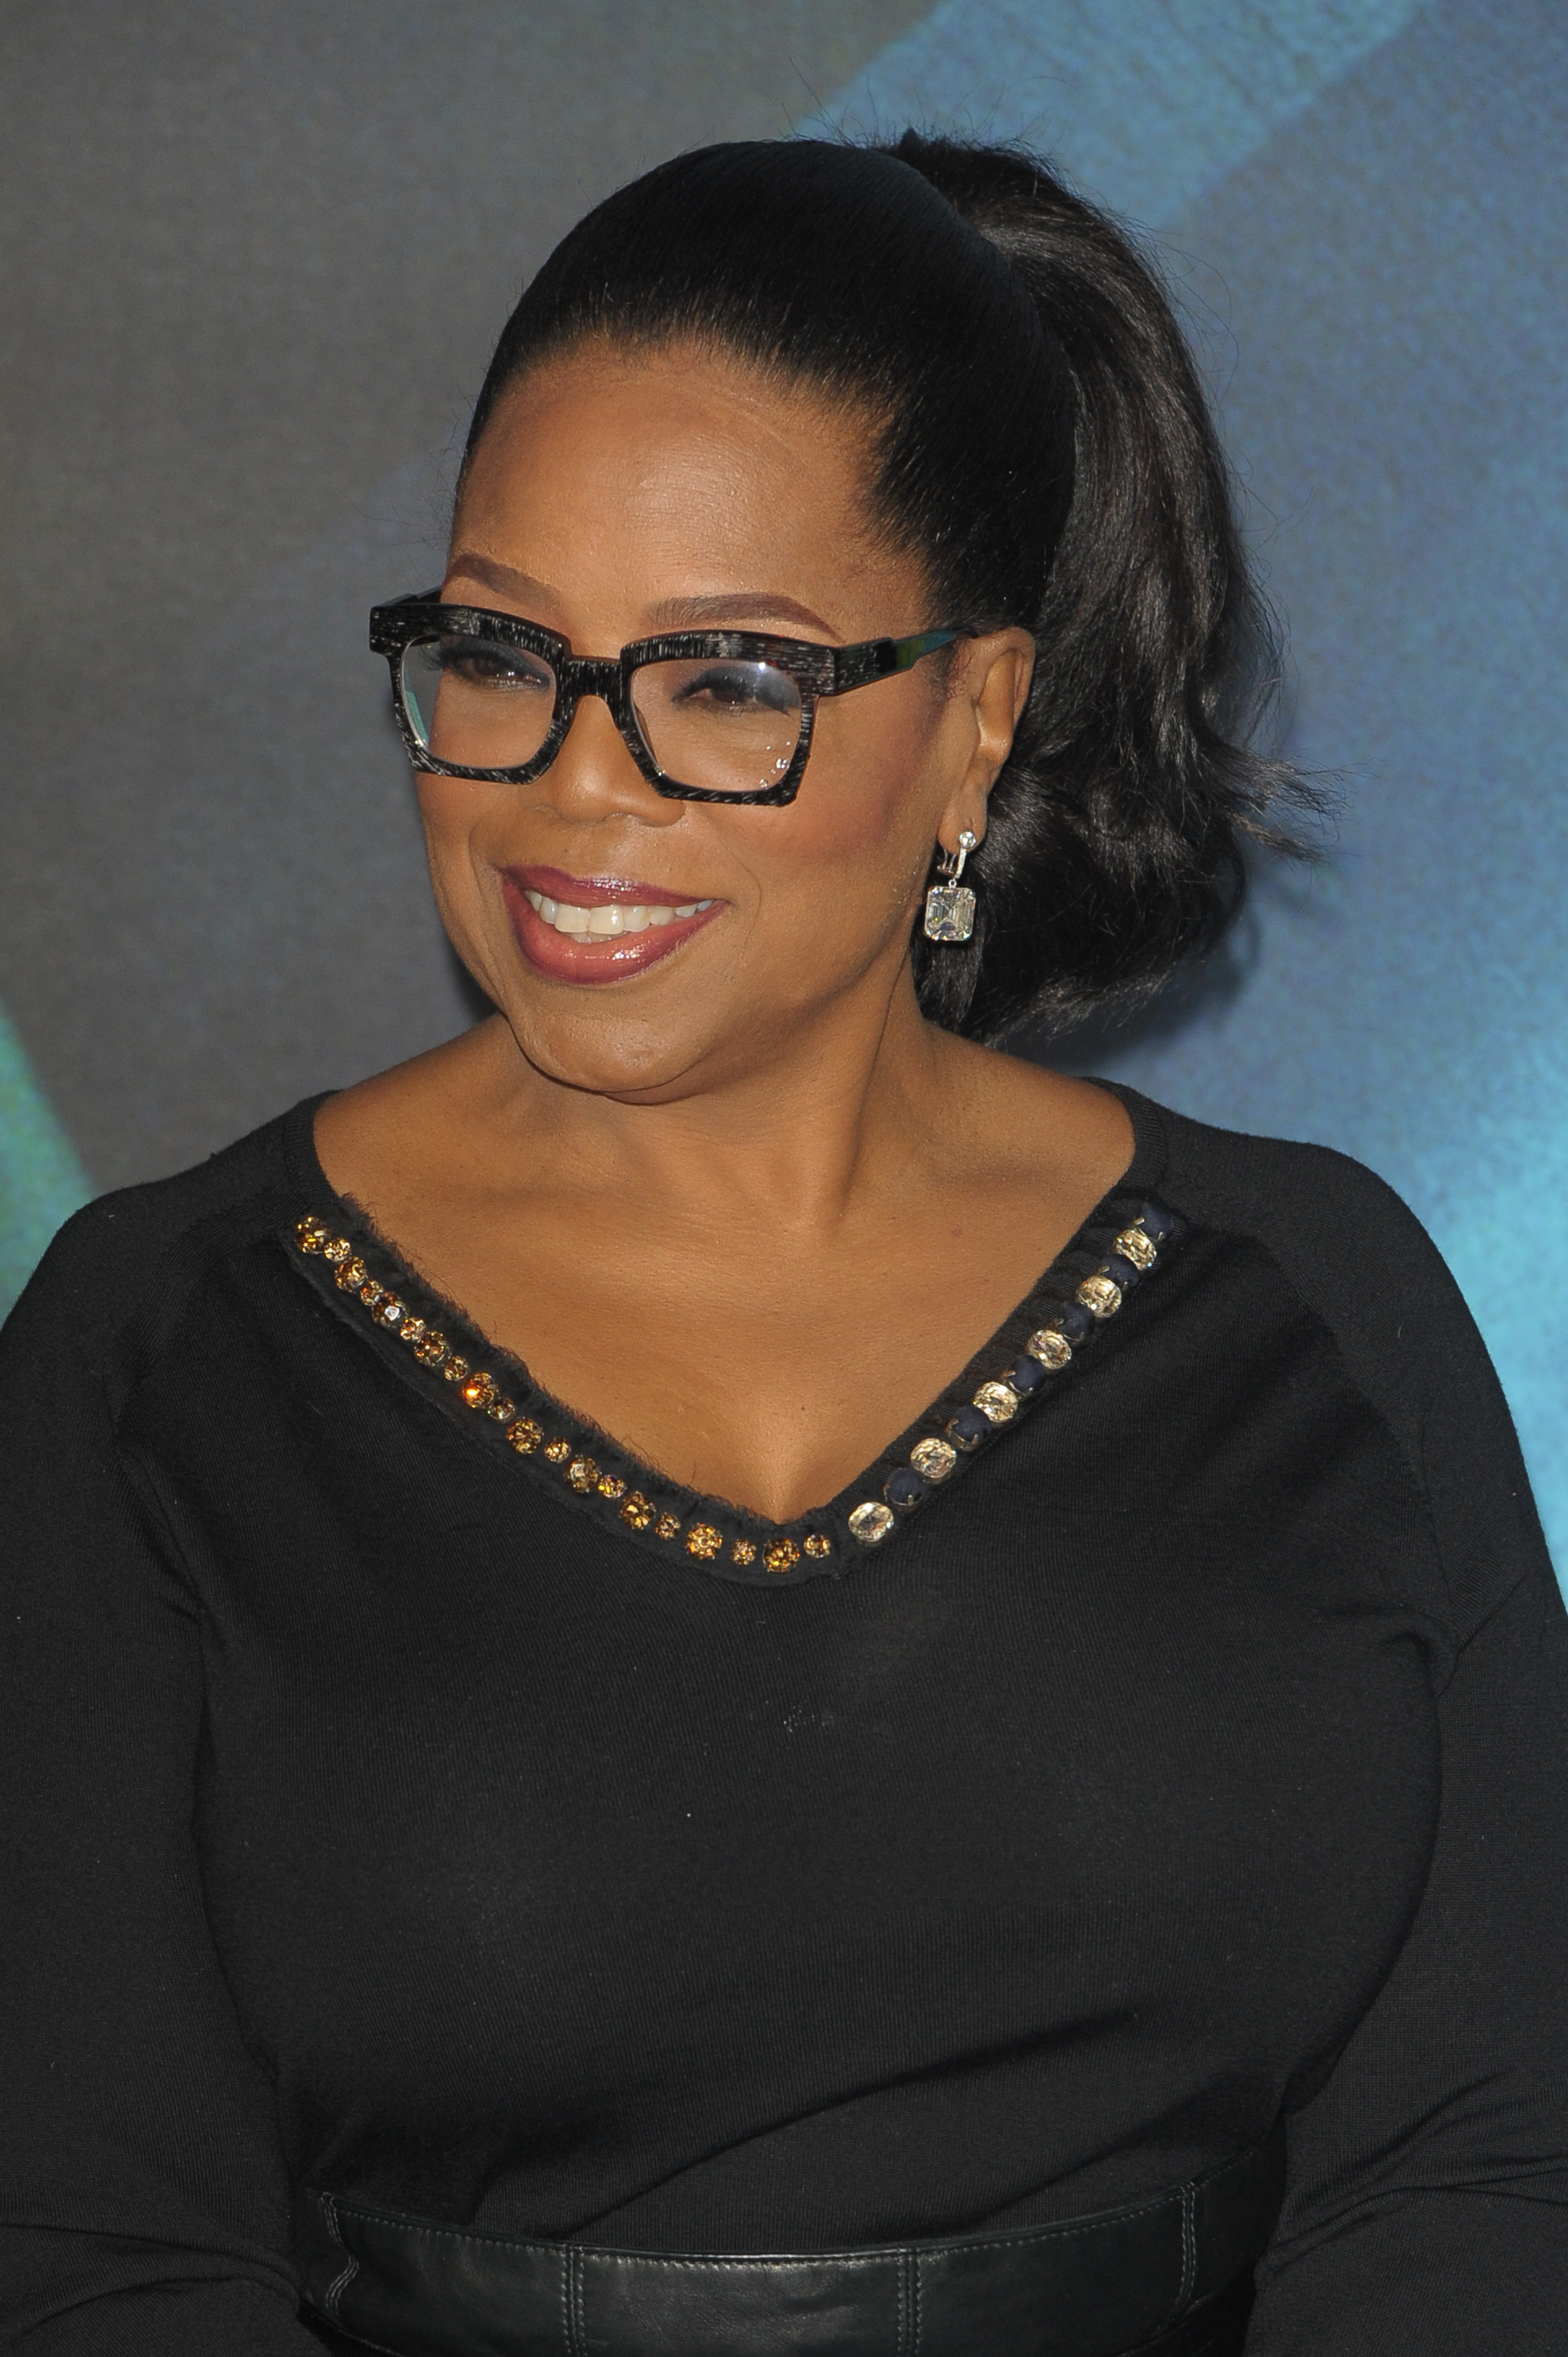 'A Wrinkle in Time' European Premiere held at the BFI - ArrivalsFeaturing: Oprah WinfreyWhere: London, United KingdomWhen: 13 Mar 2018Credit: Zibi/WENN.com